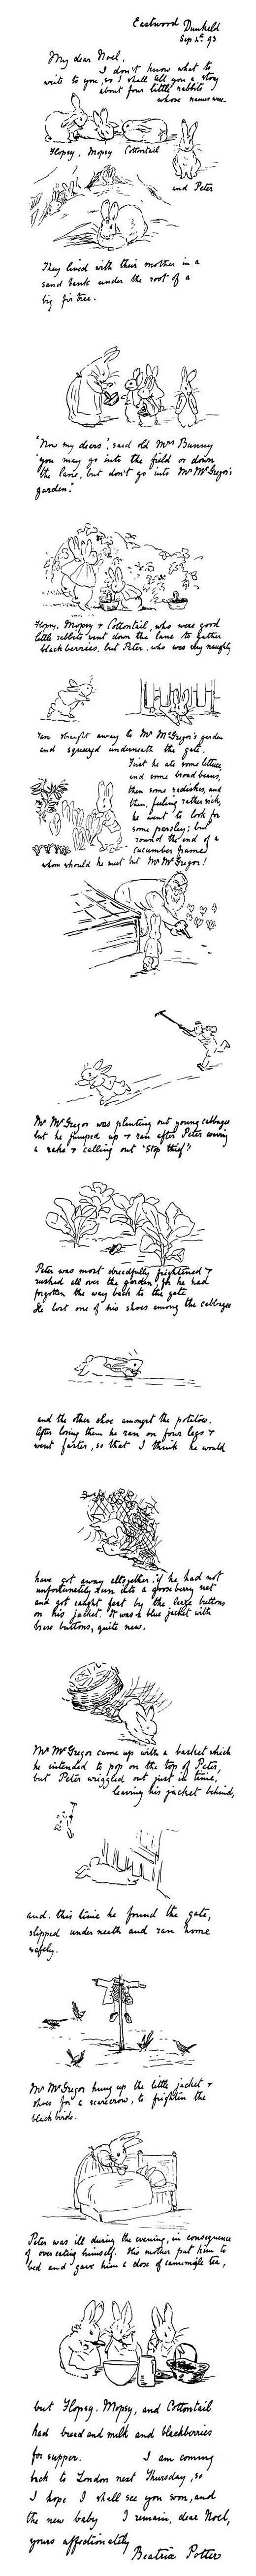 Letters of Note: Beatrix Potter sends an illustrated letter to her five yr old son, Noel, with the Tale of Peter Rabbit